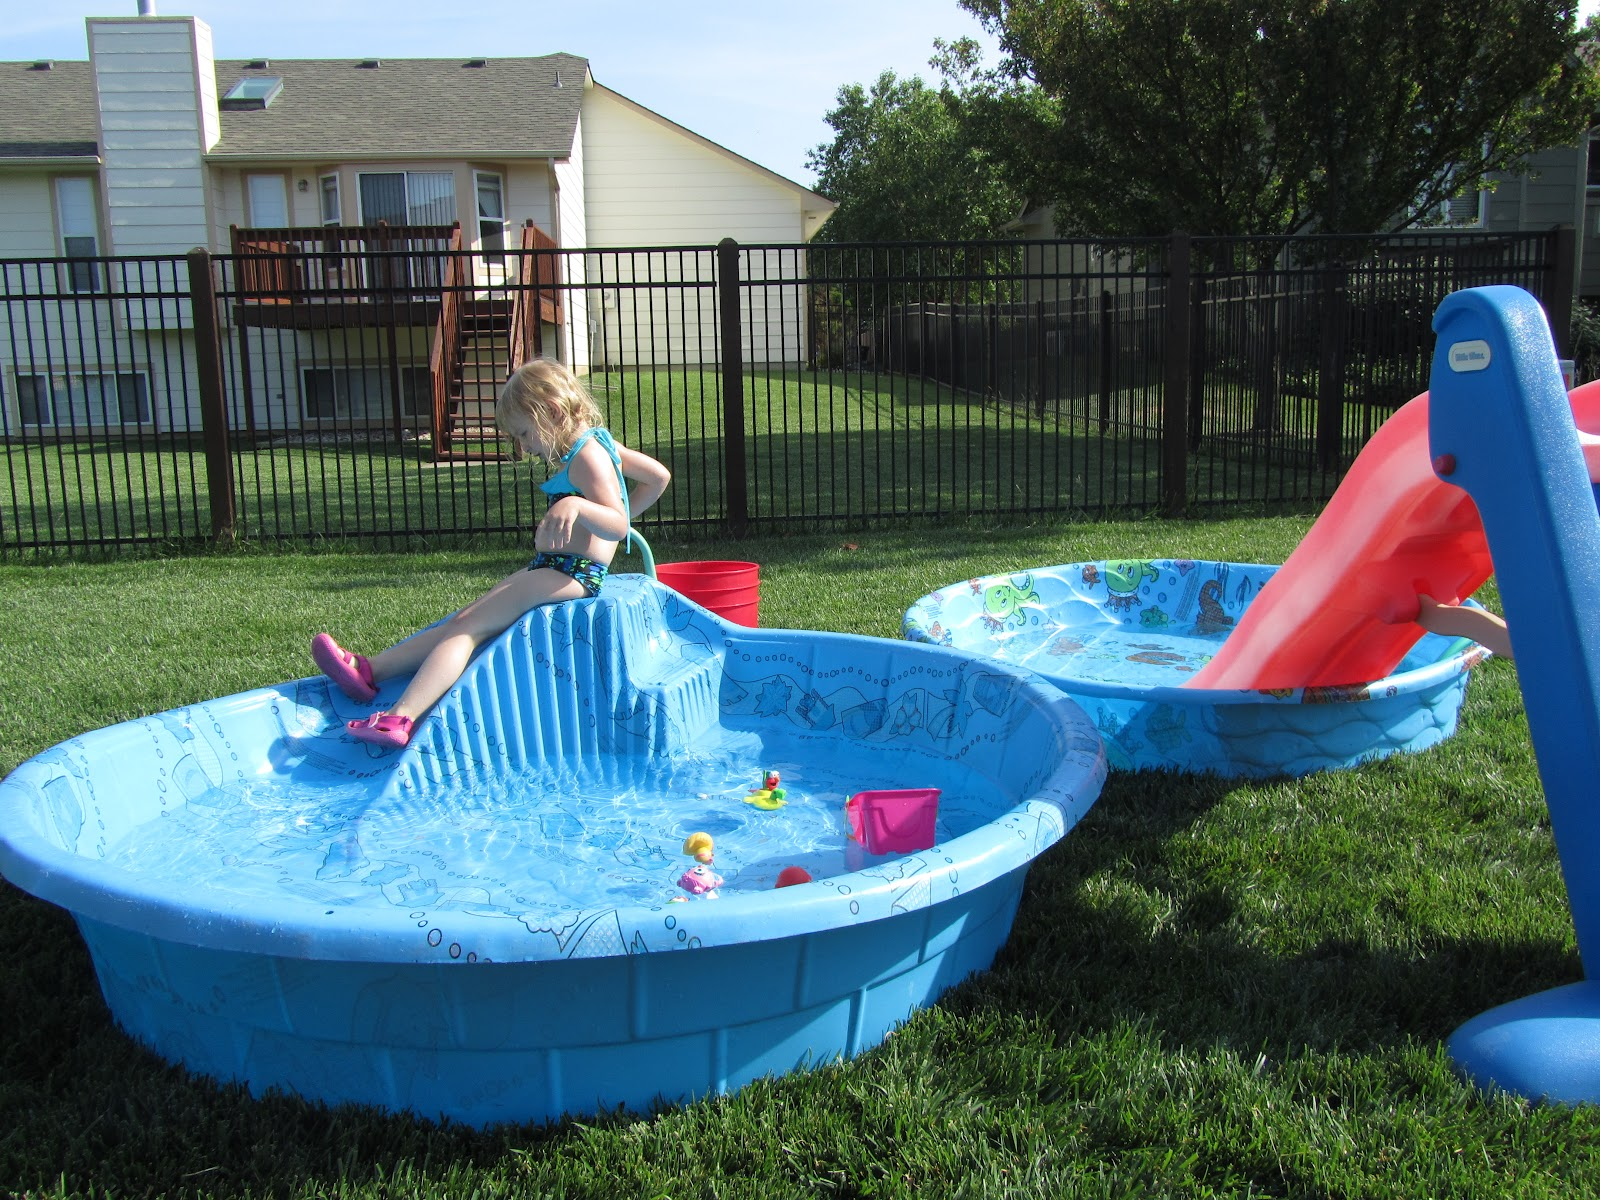 [pics of backyard pools]